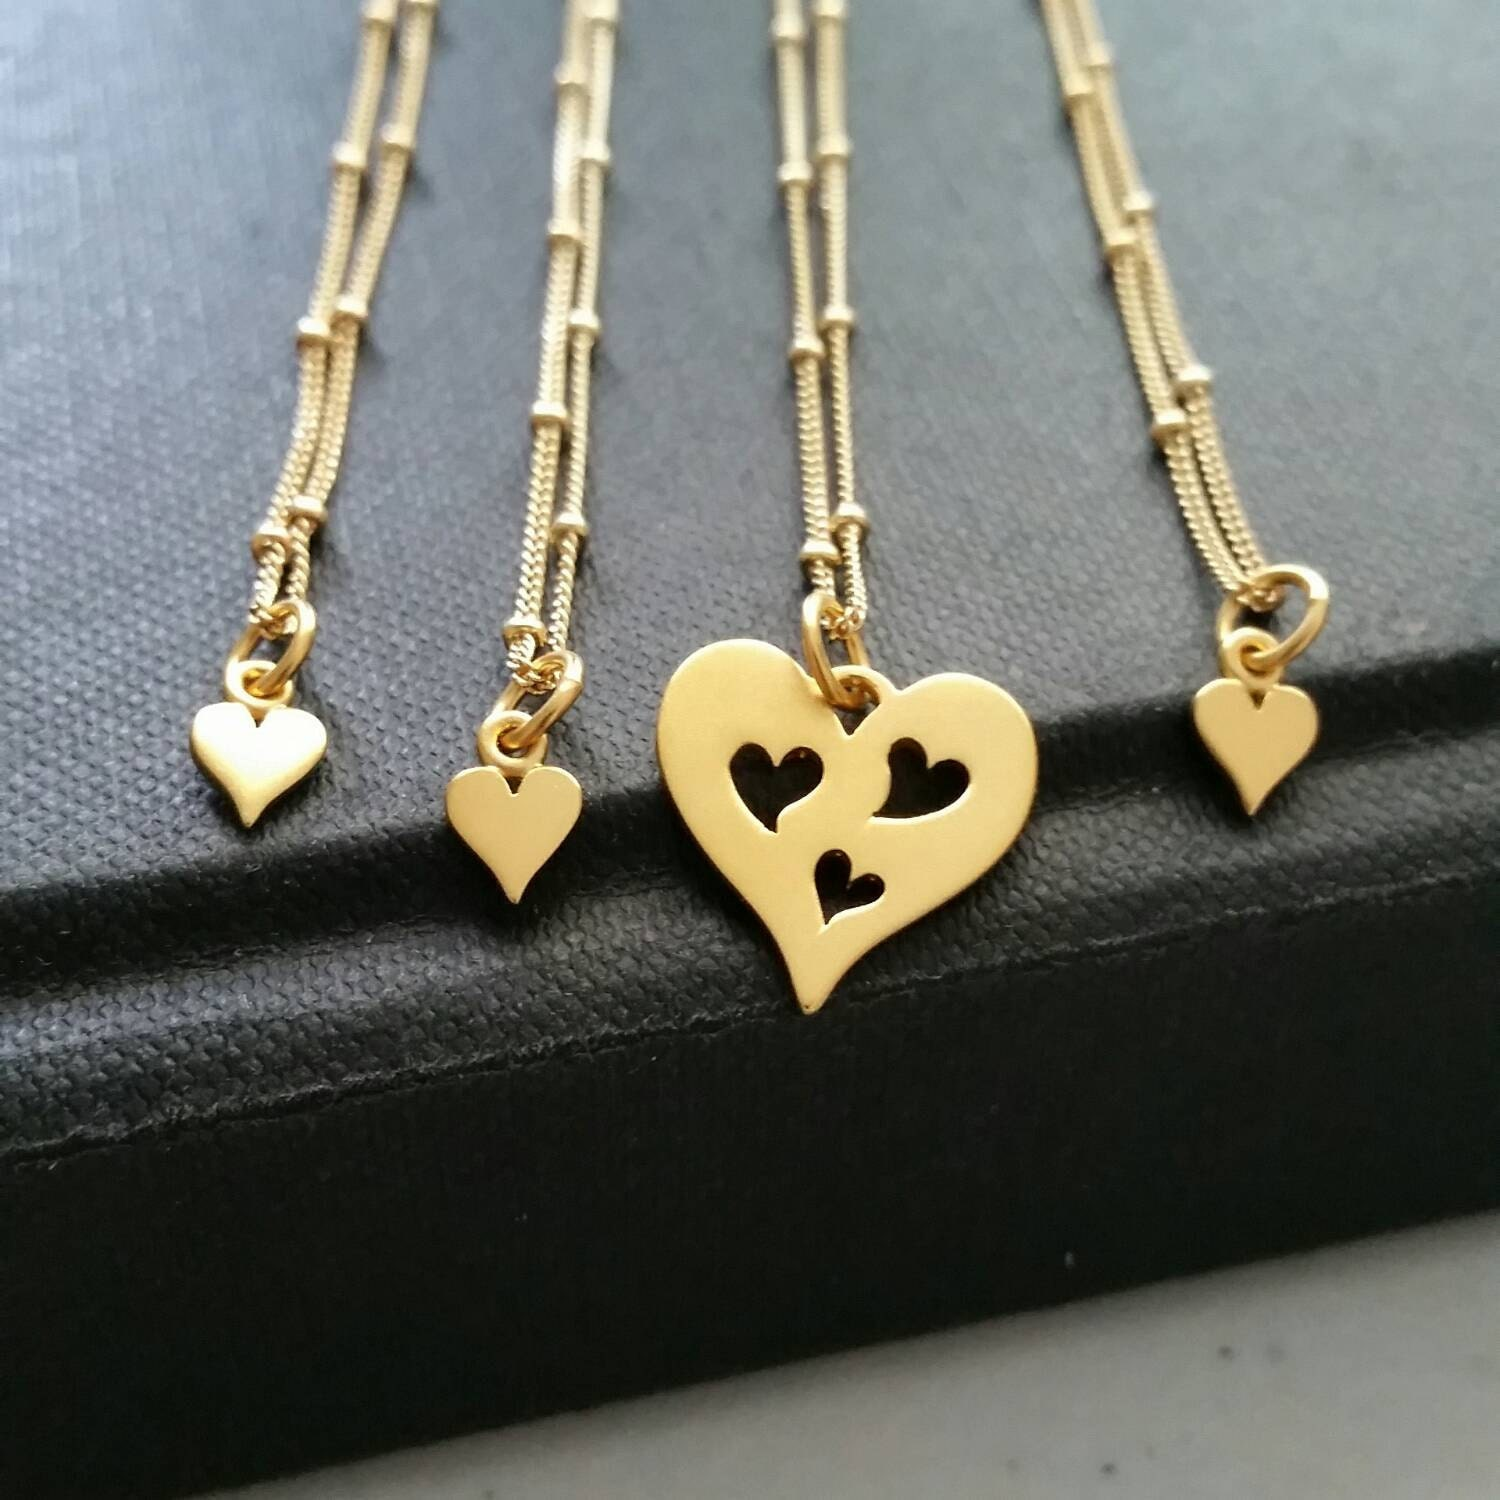 a5096c822beee Mother & 3 daughters necklace set, mom birthday gift, 24k gp heart cutout  charm, mothers day gift, mom of three children, satellite chain